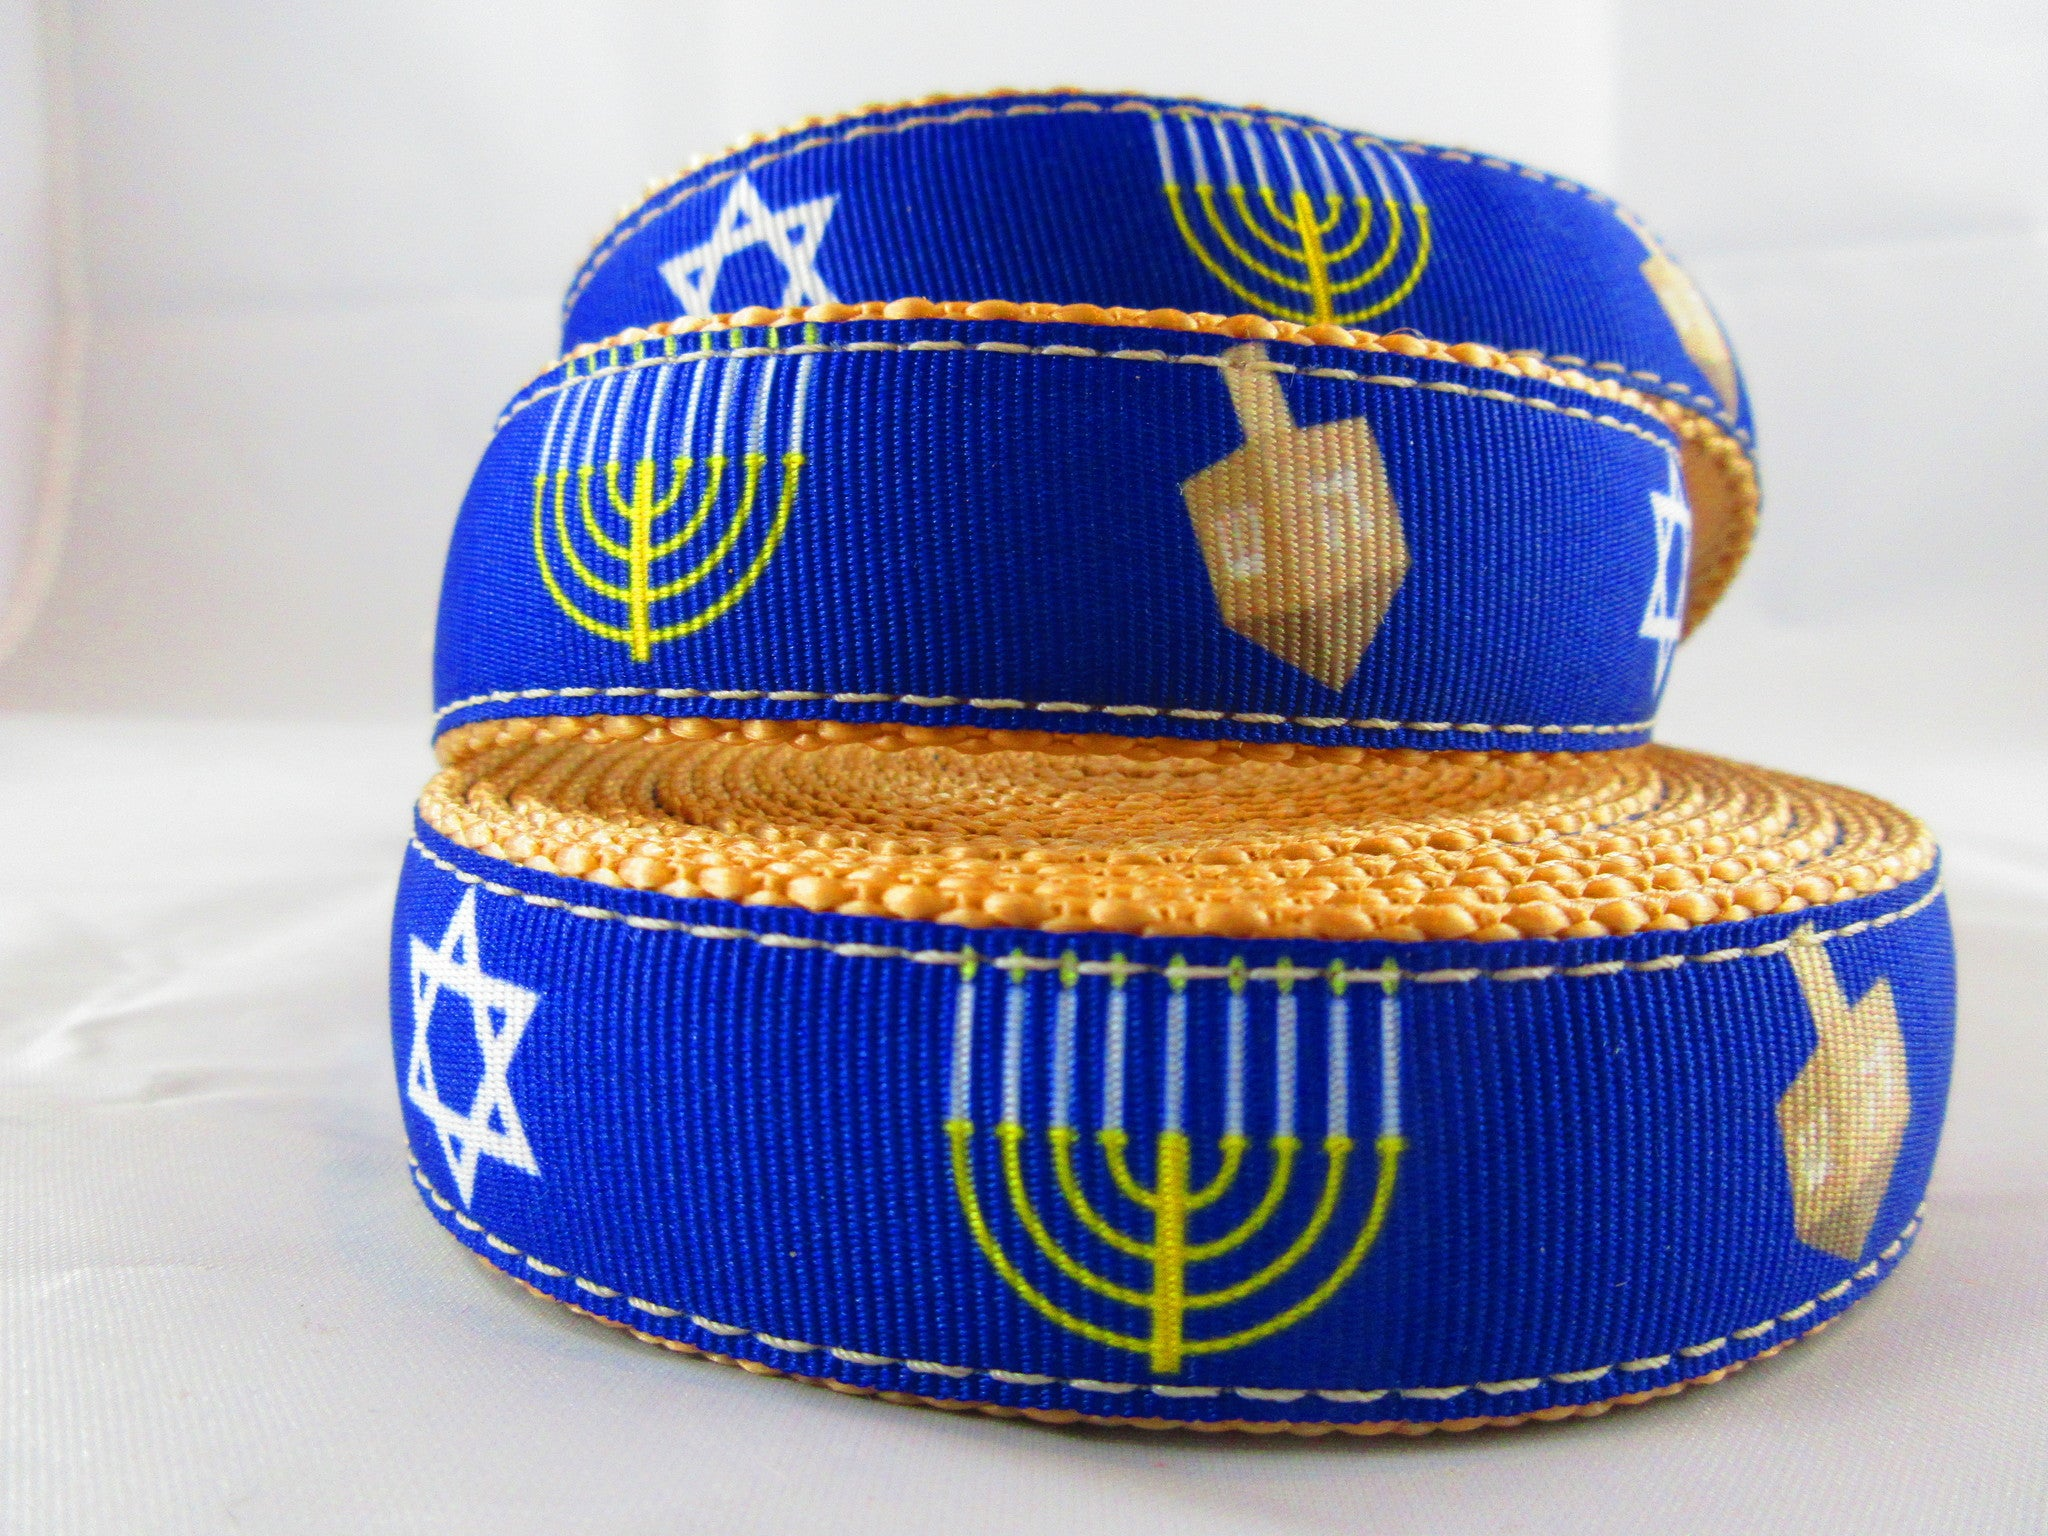 "1"" Hanukkah Dog Collar - Penny and Hoover's Pig Pen"